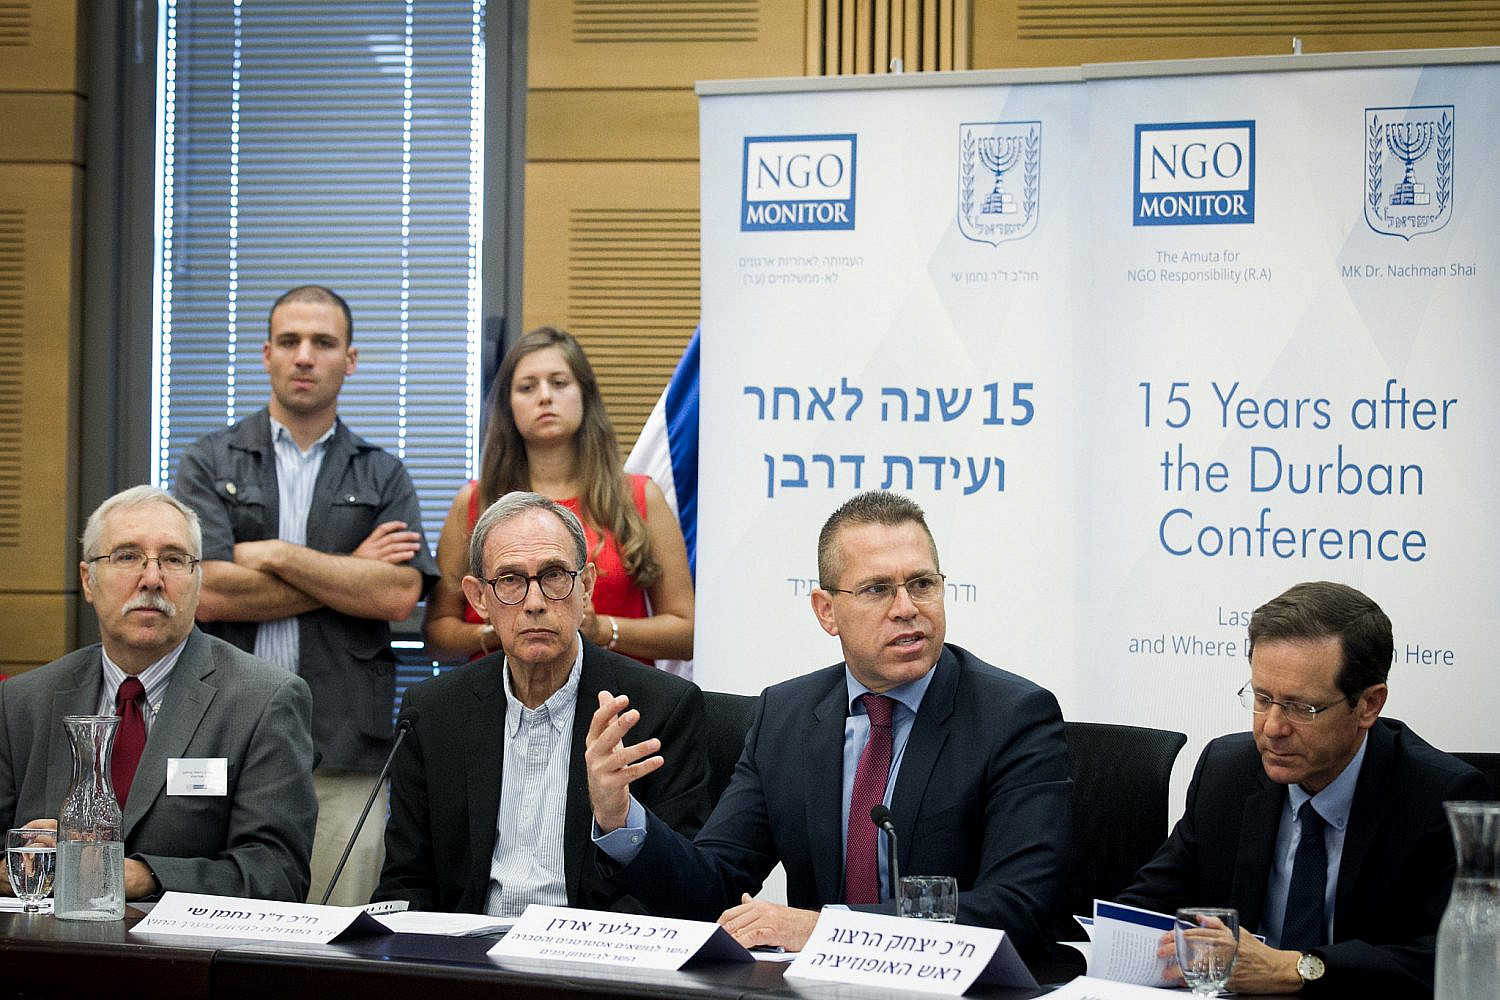 Former Israeli Information Minister Gilad Erdan speaks at a conference organized by NGO Monitor at the Knesset, June 20, 2016. (Miriam Alster/Flash90)